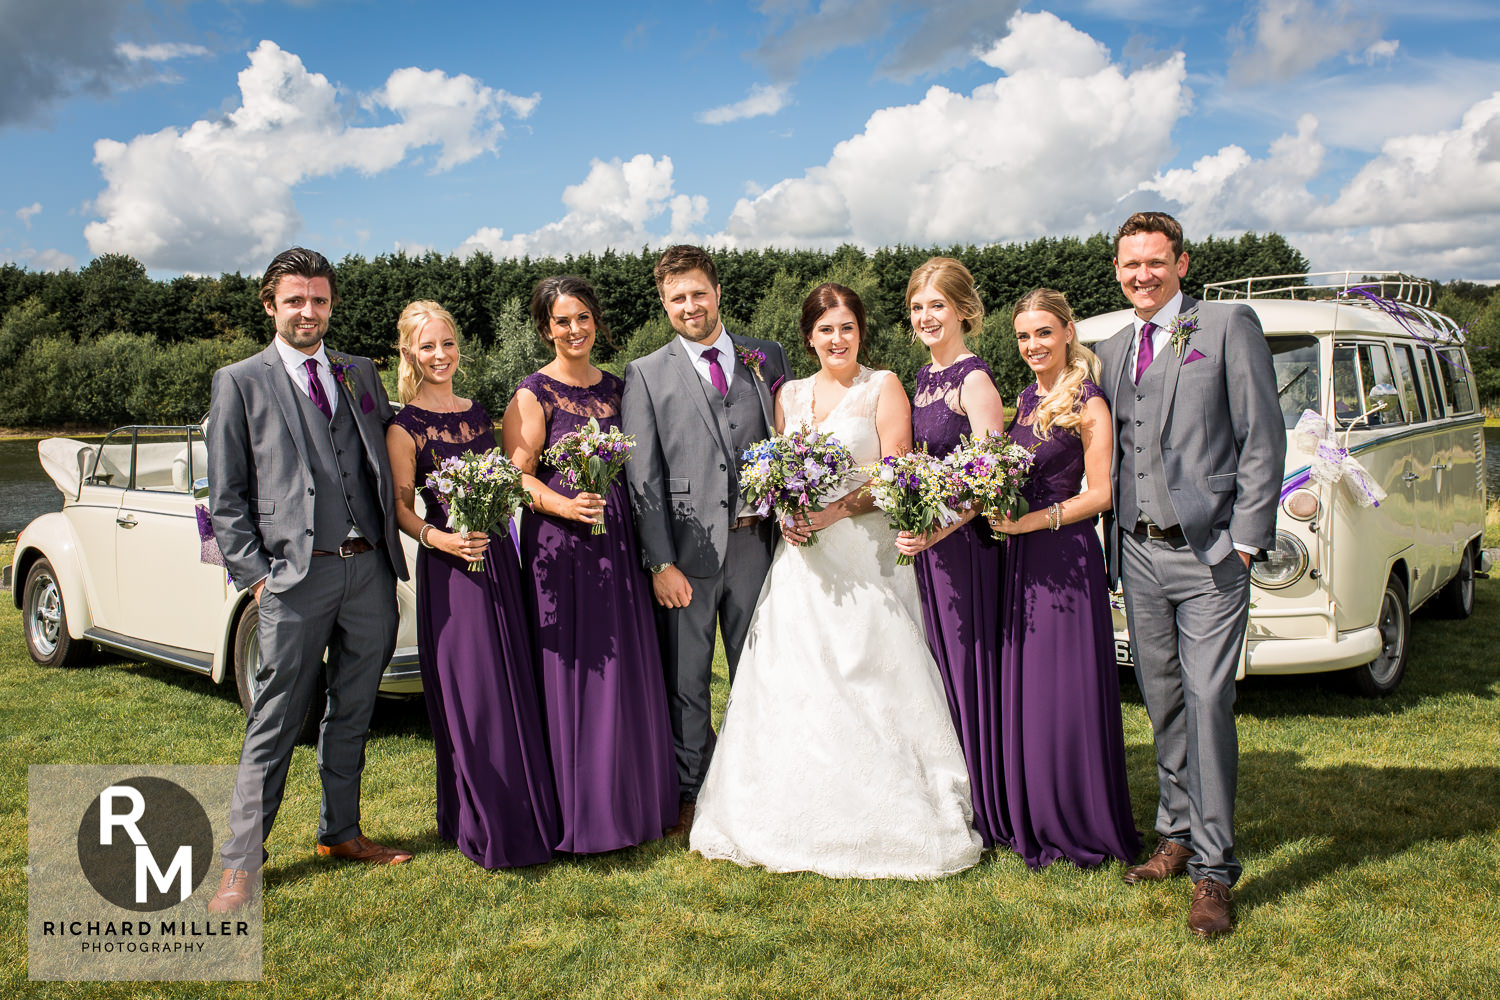 Chris Sophie Web 250 - Cherry Orchard Lake Wedding Photography - Sophie and Chris